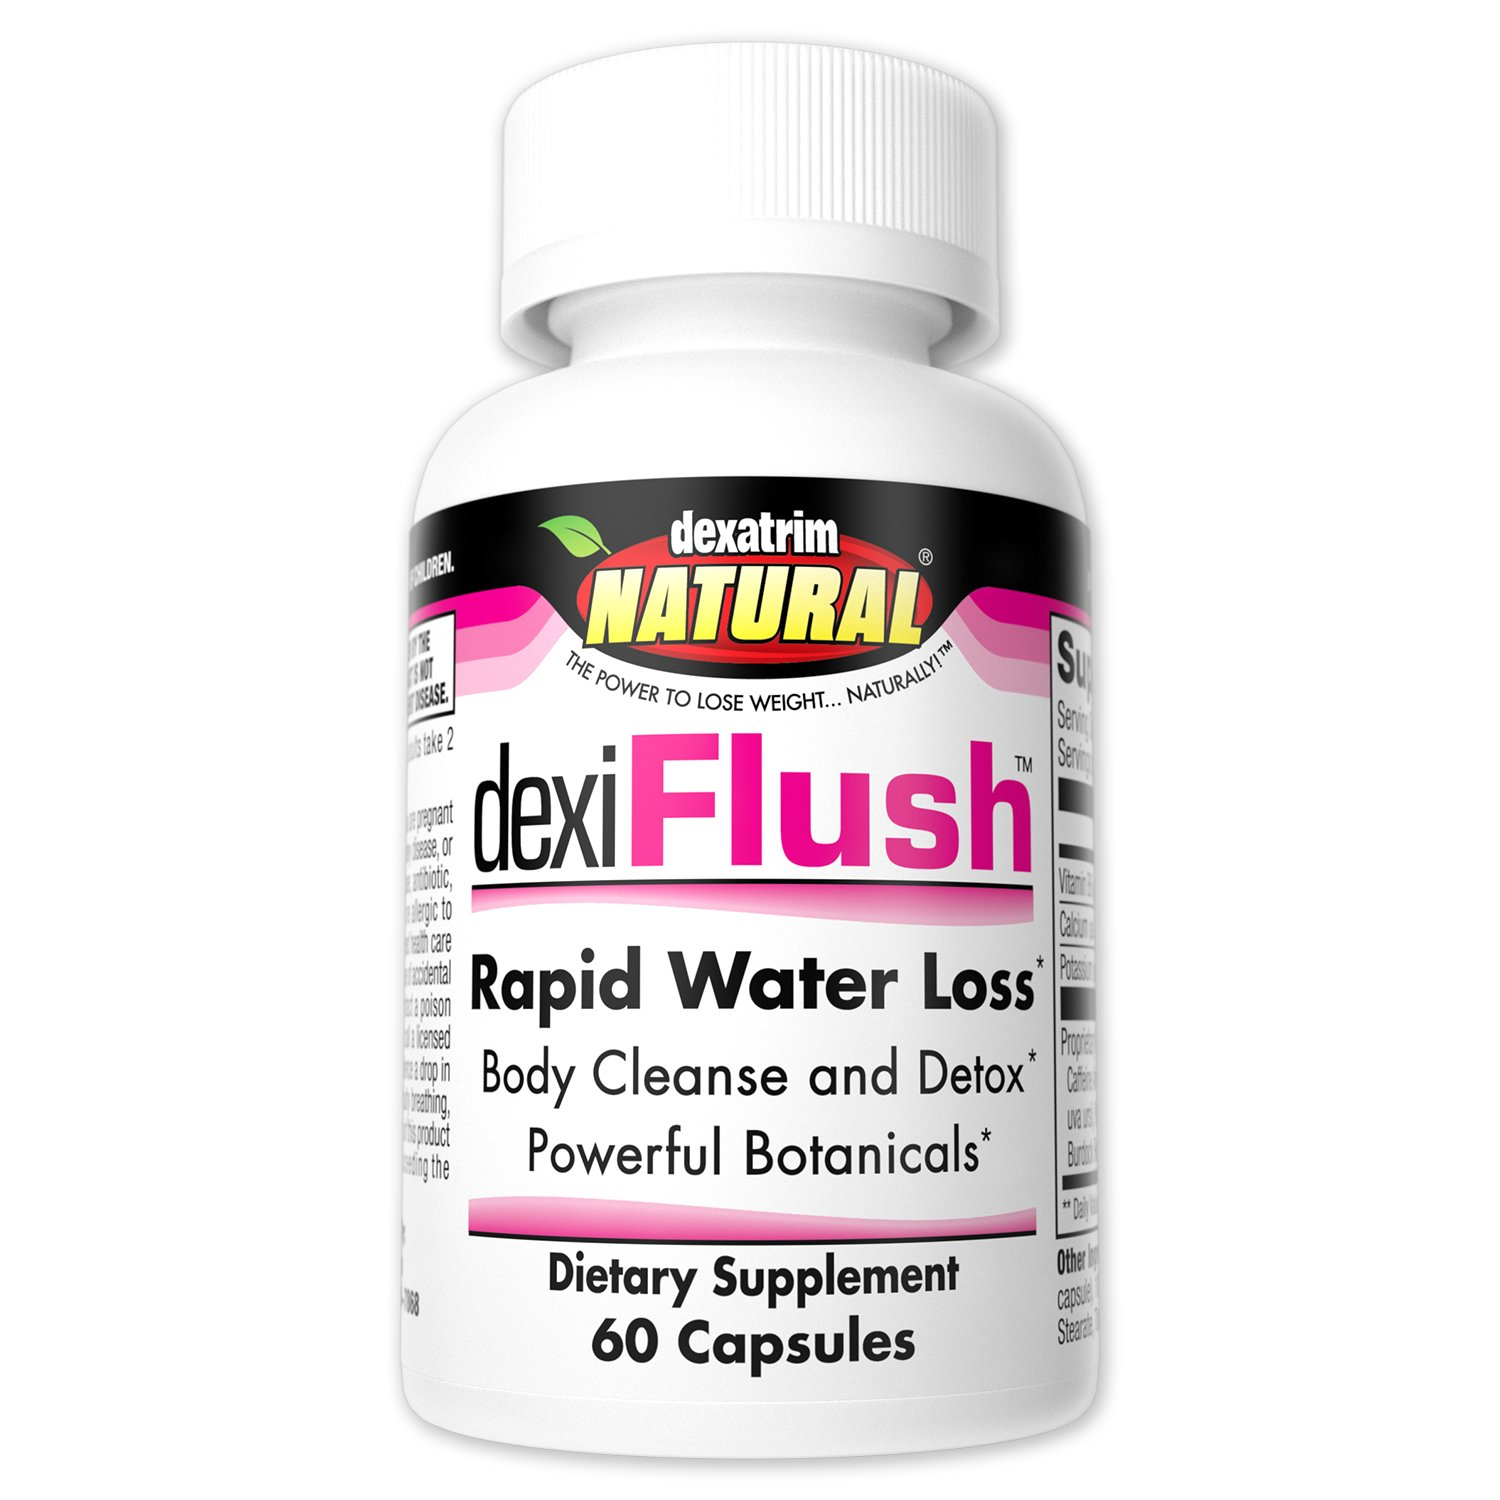 Amazon.com: Dexatrim Natural dexiFlush- Rapid Water Loss Pills | Dietary Supplement & Detox w/Herbal Blend and High Vitamin B6 for Men & Women (60-Count ...